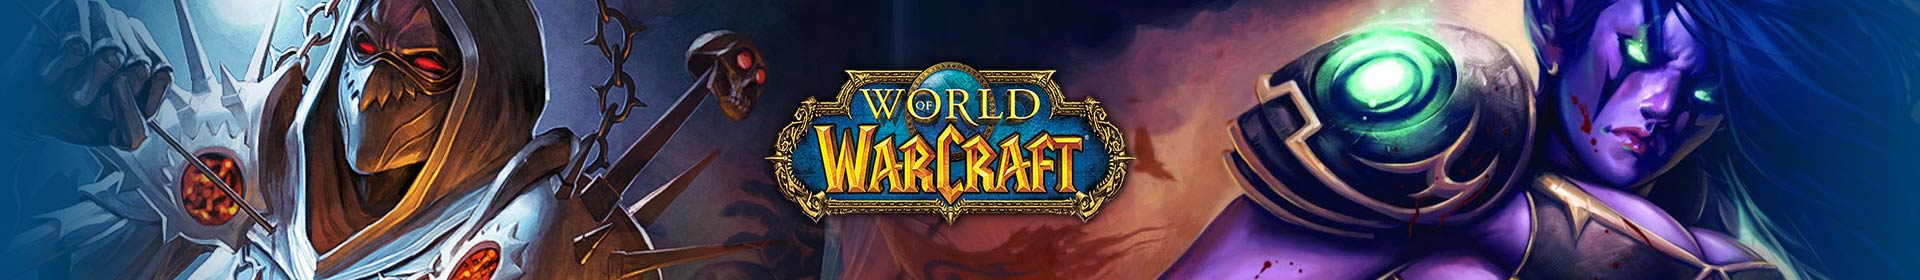 World of Warcraft Gold EU